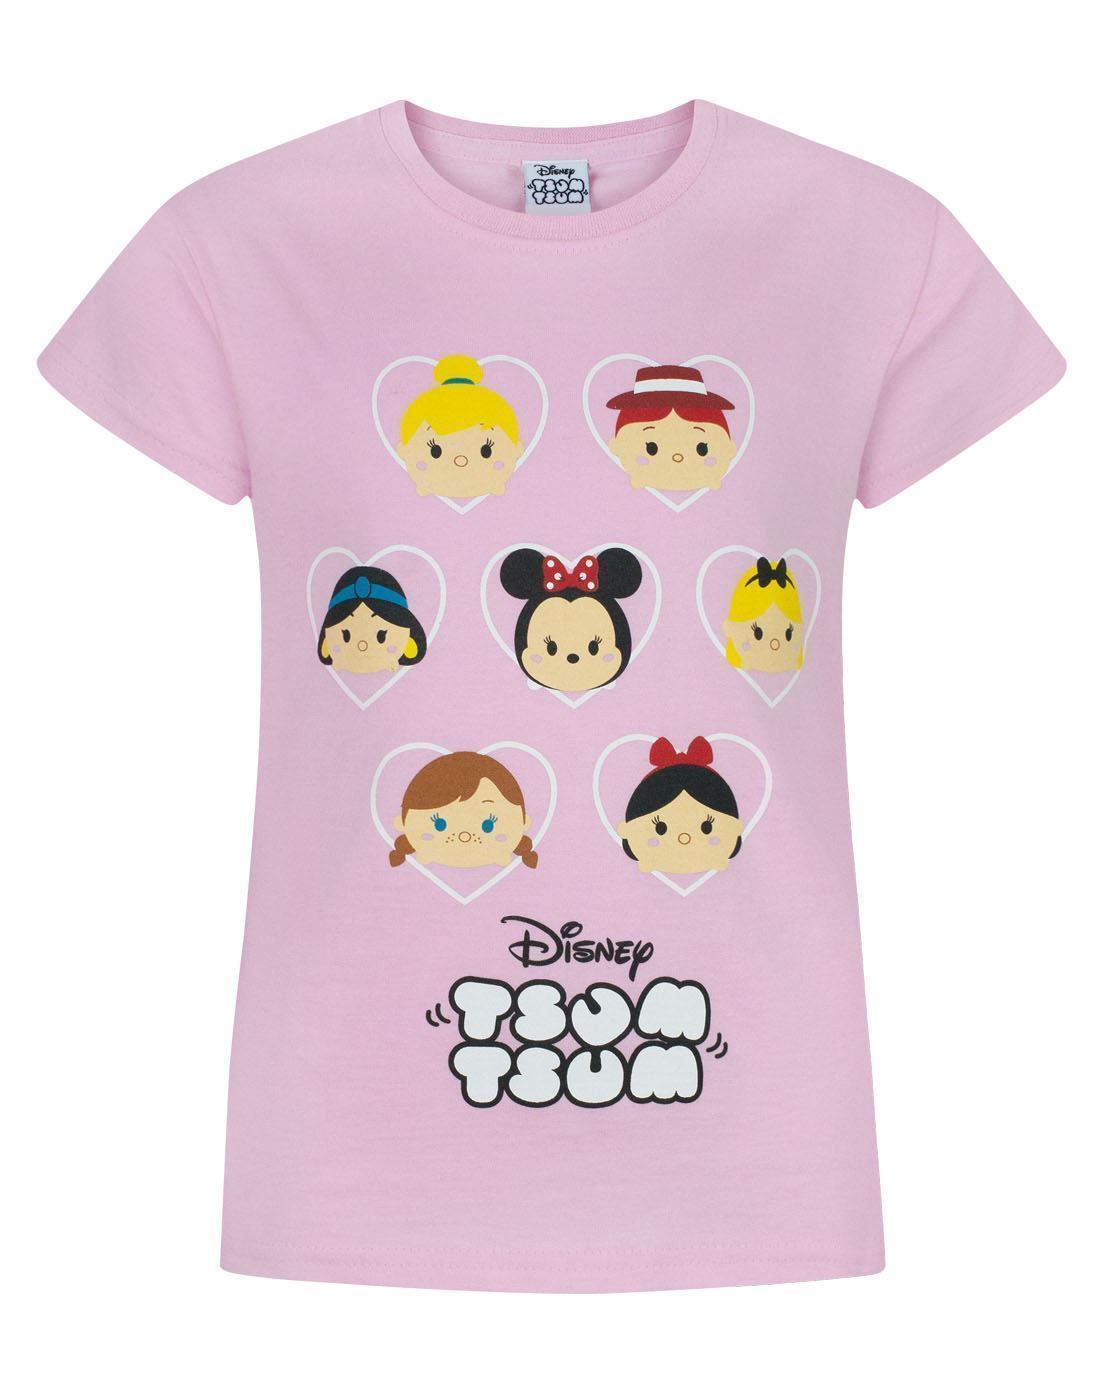 Disney Tsum Tsum Girl's T-Shirt